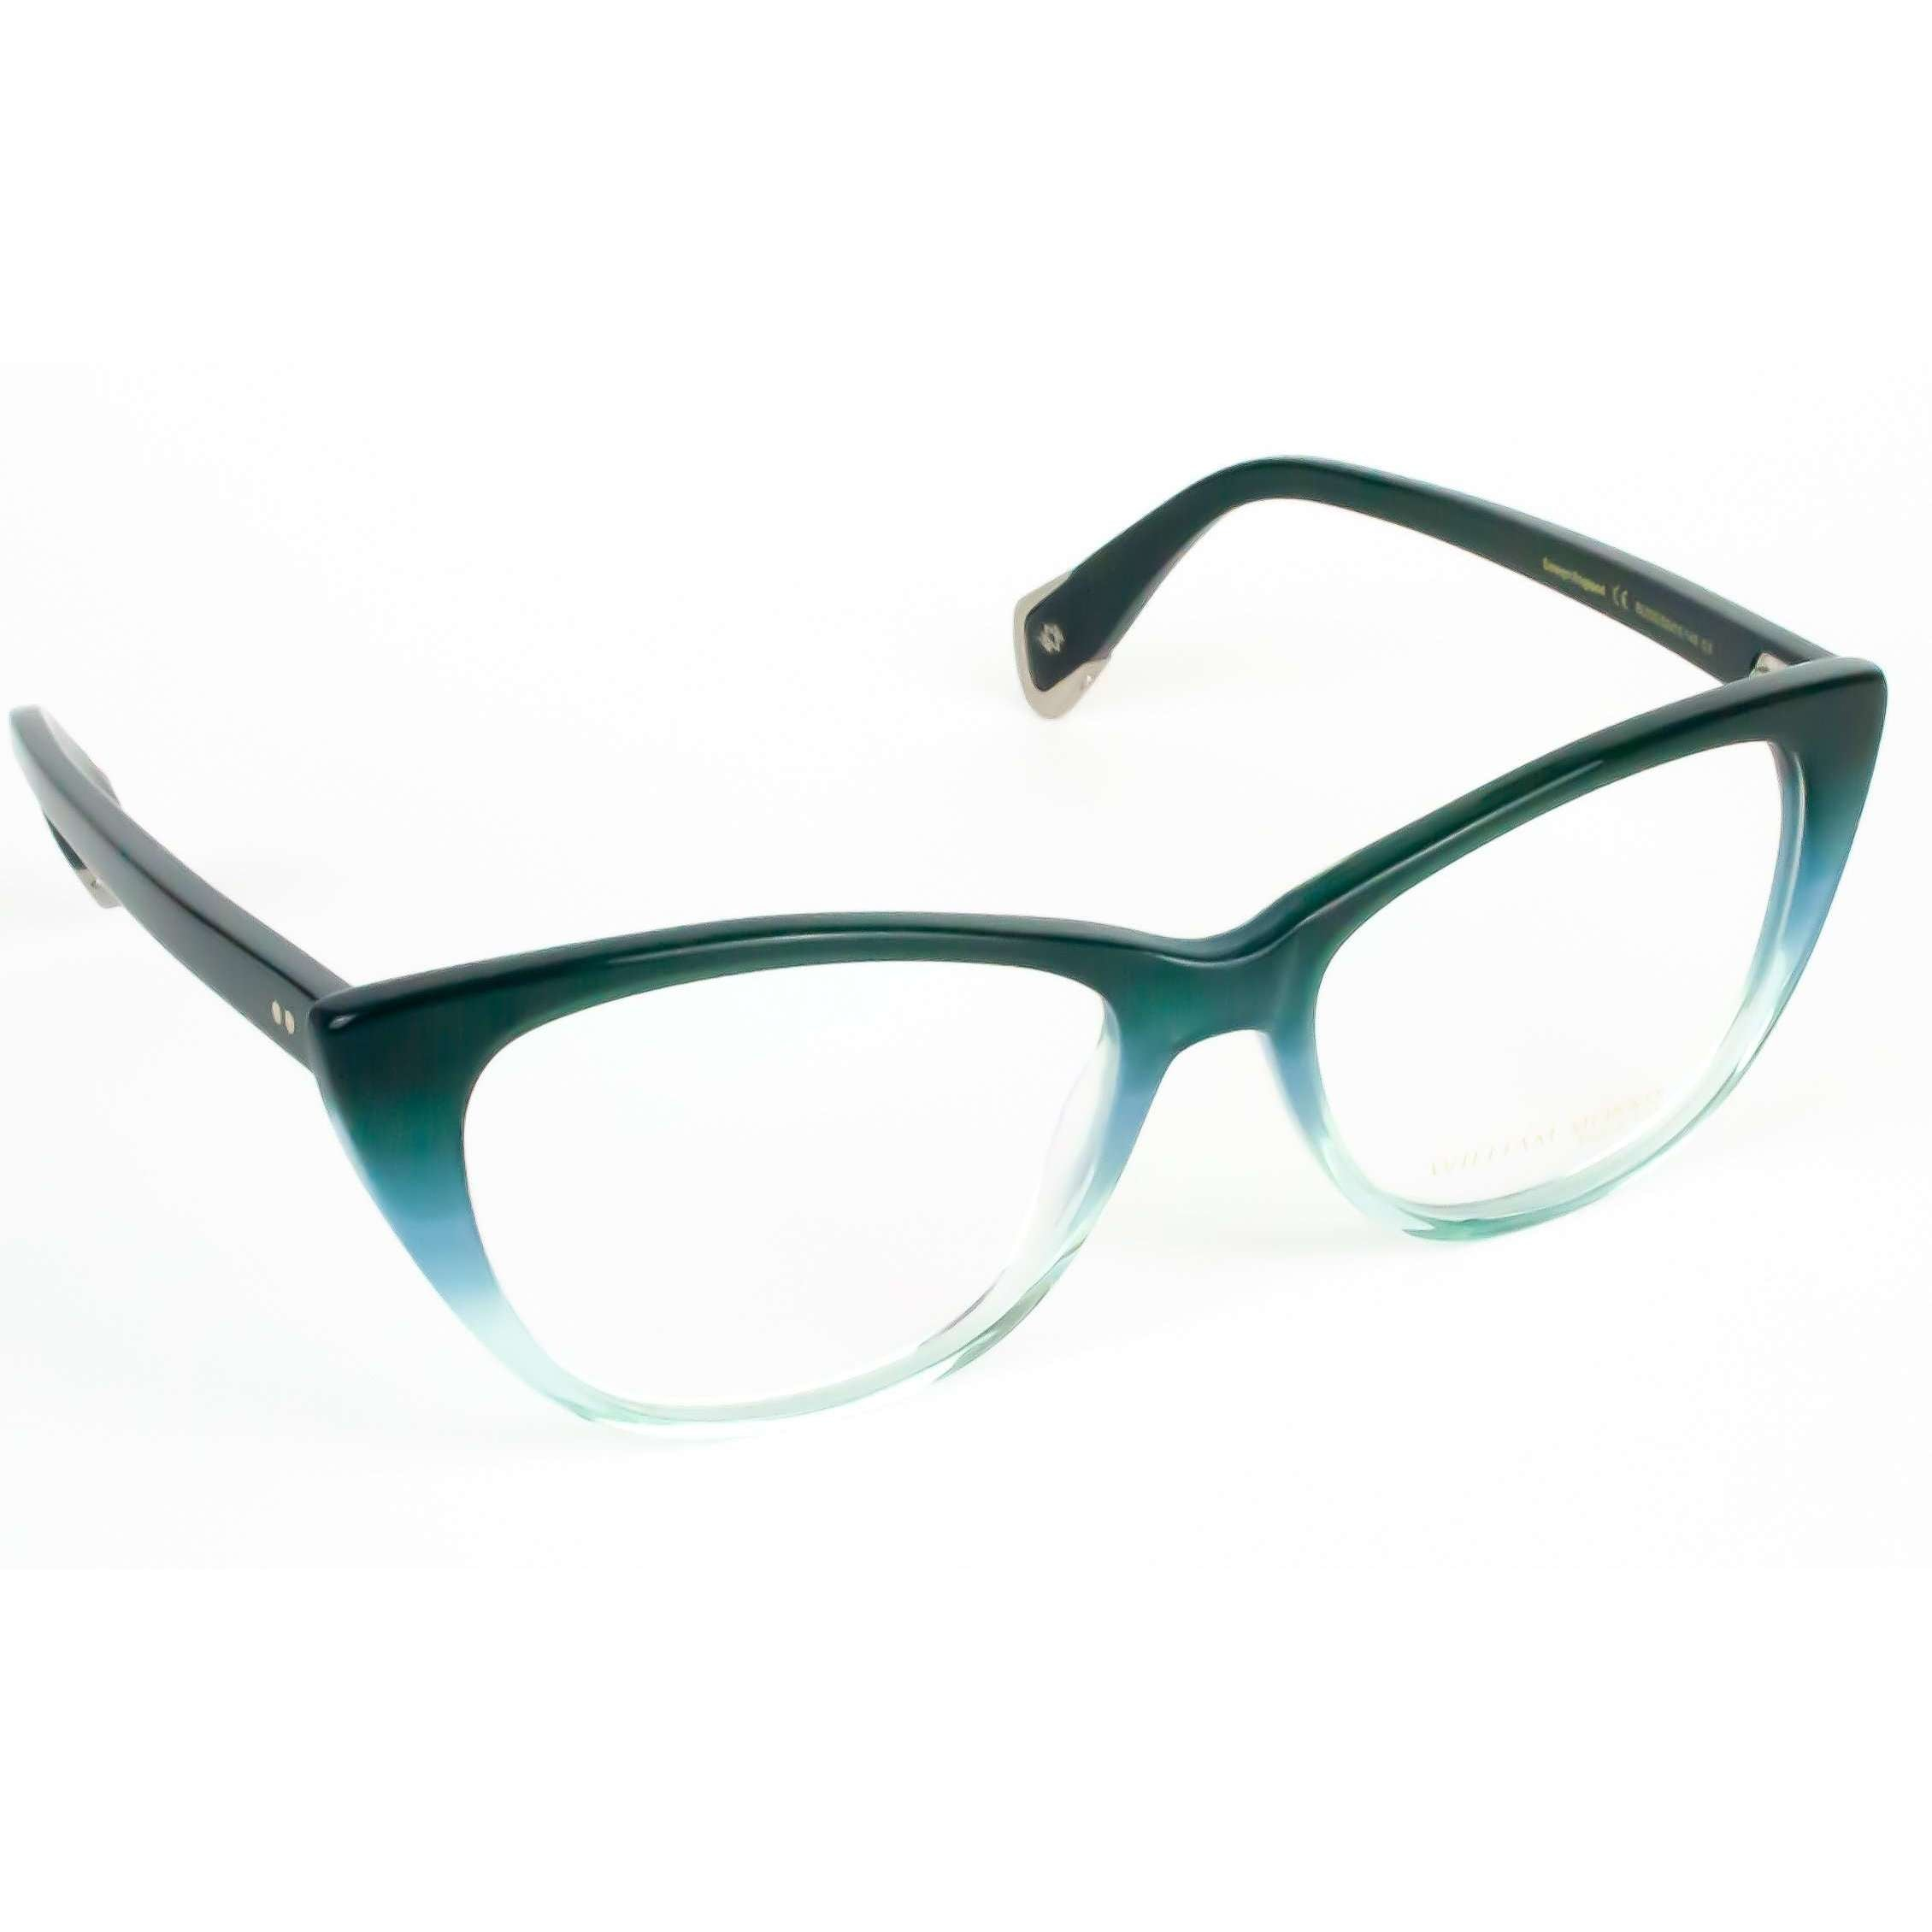 William Morris Black Label Model BL033 Cat Eye Teal Glasses